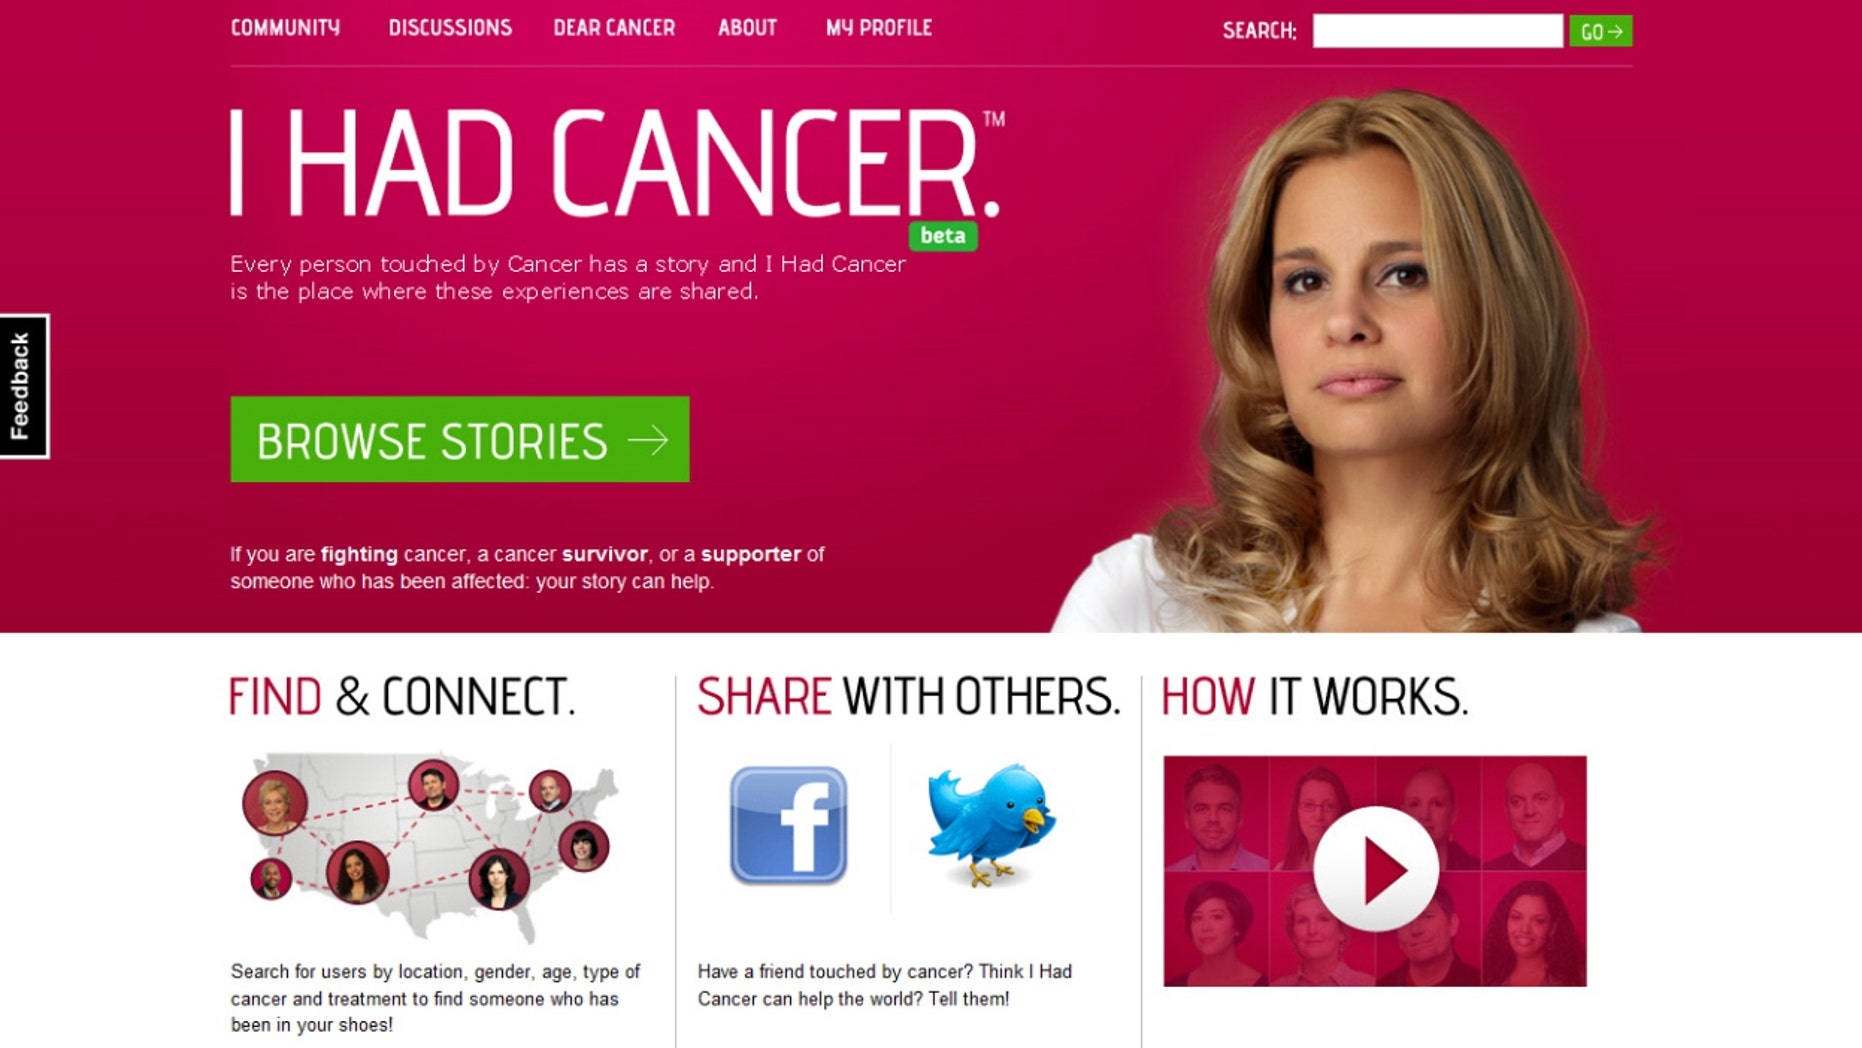 """Mailet Lopez, a 37-year-old Cuban-American, founded """"I Had Cancer,"""" an online social support network for cancer patients and their family and friends."""